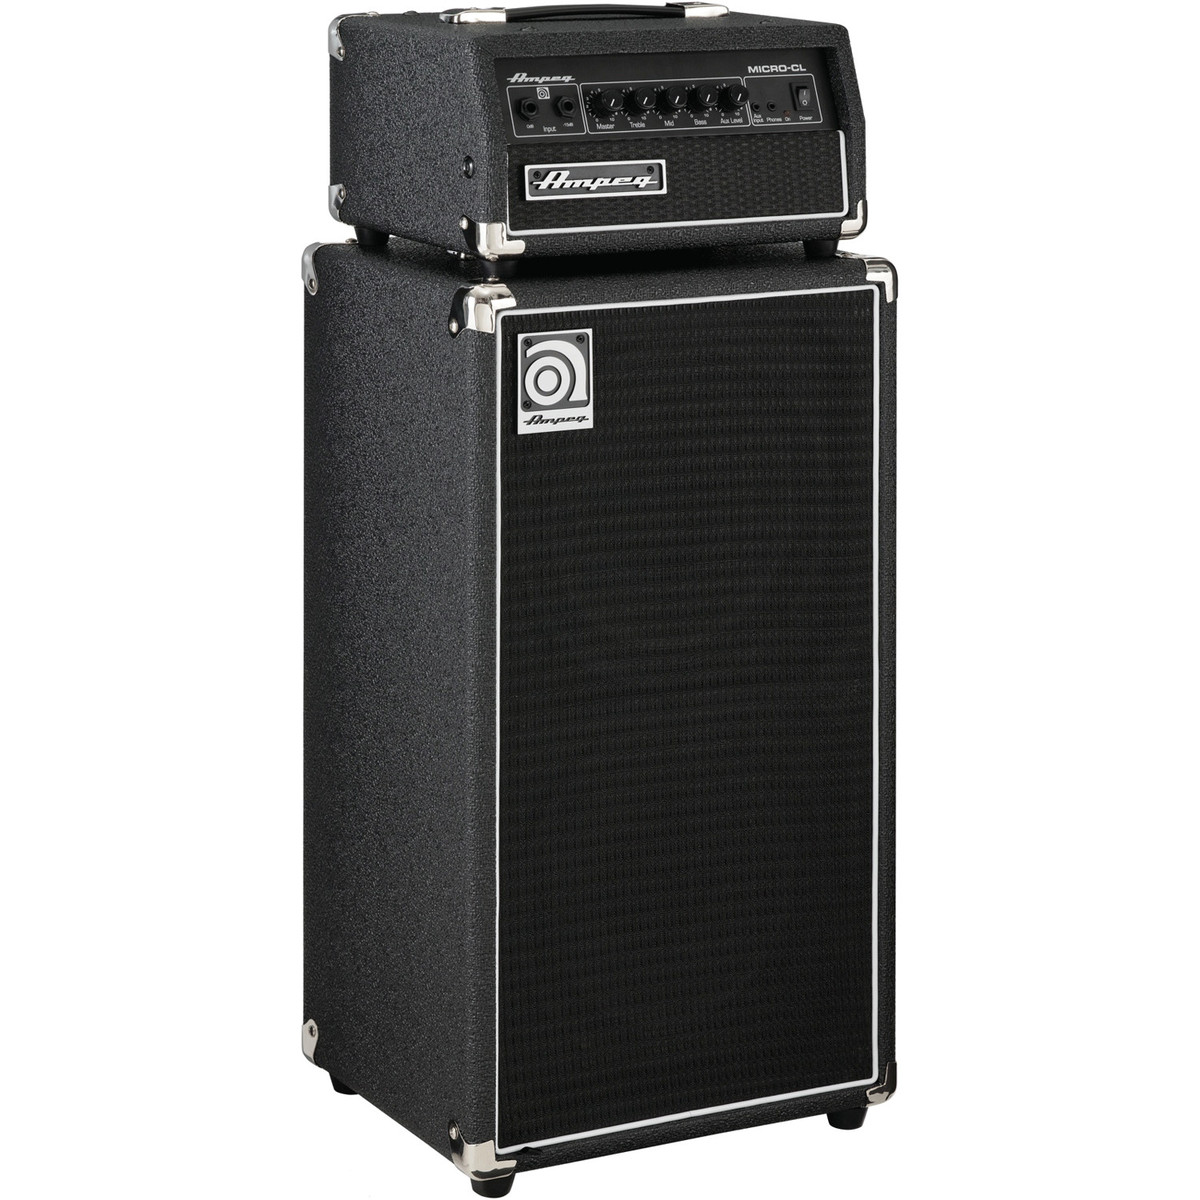 ampeg micro cl stack bass amp head and cab box opened at gear4music. Black Bedroom Furniture Sets. Home Design Ideas